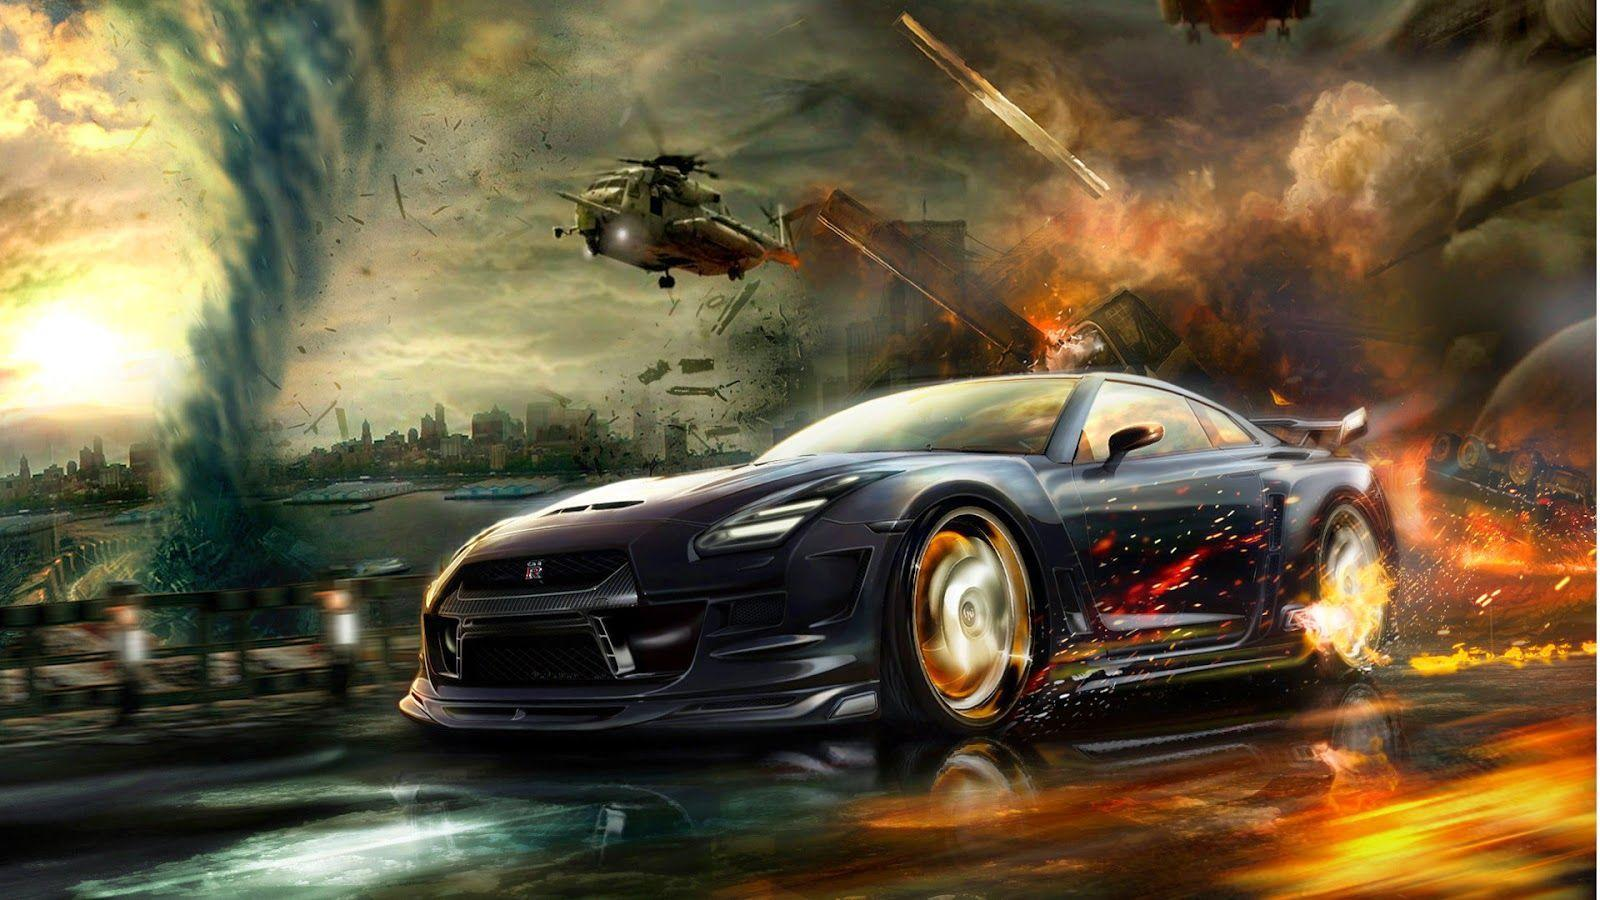 3d Cars Wallpapers Wallpaper Cave